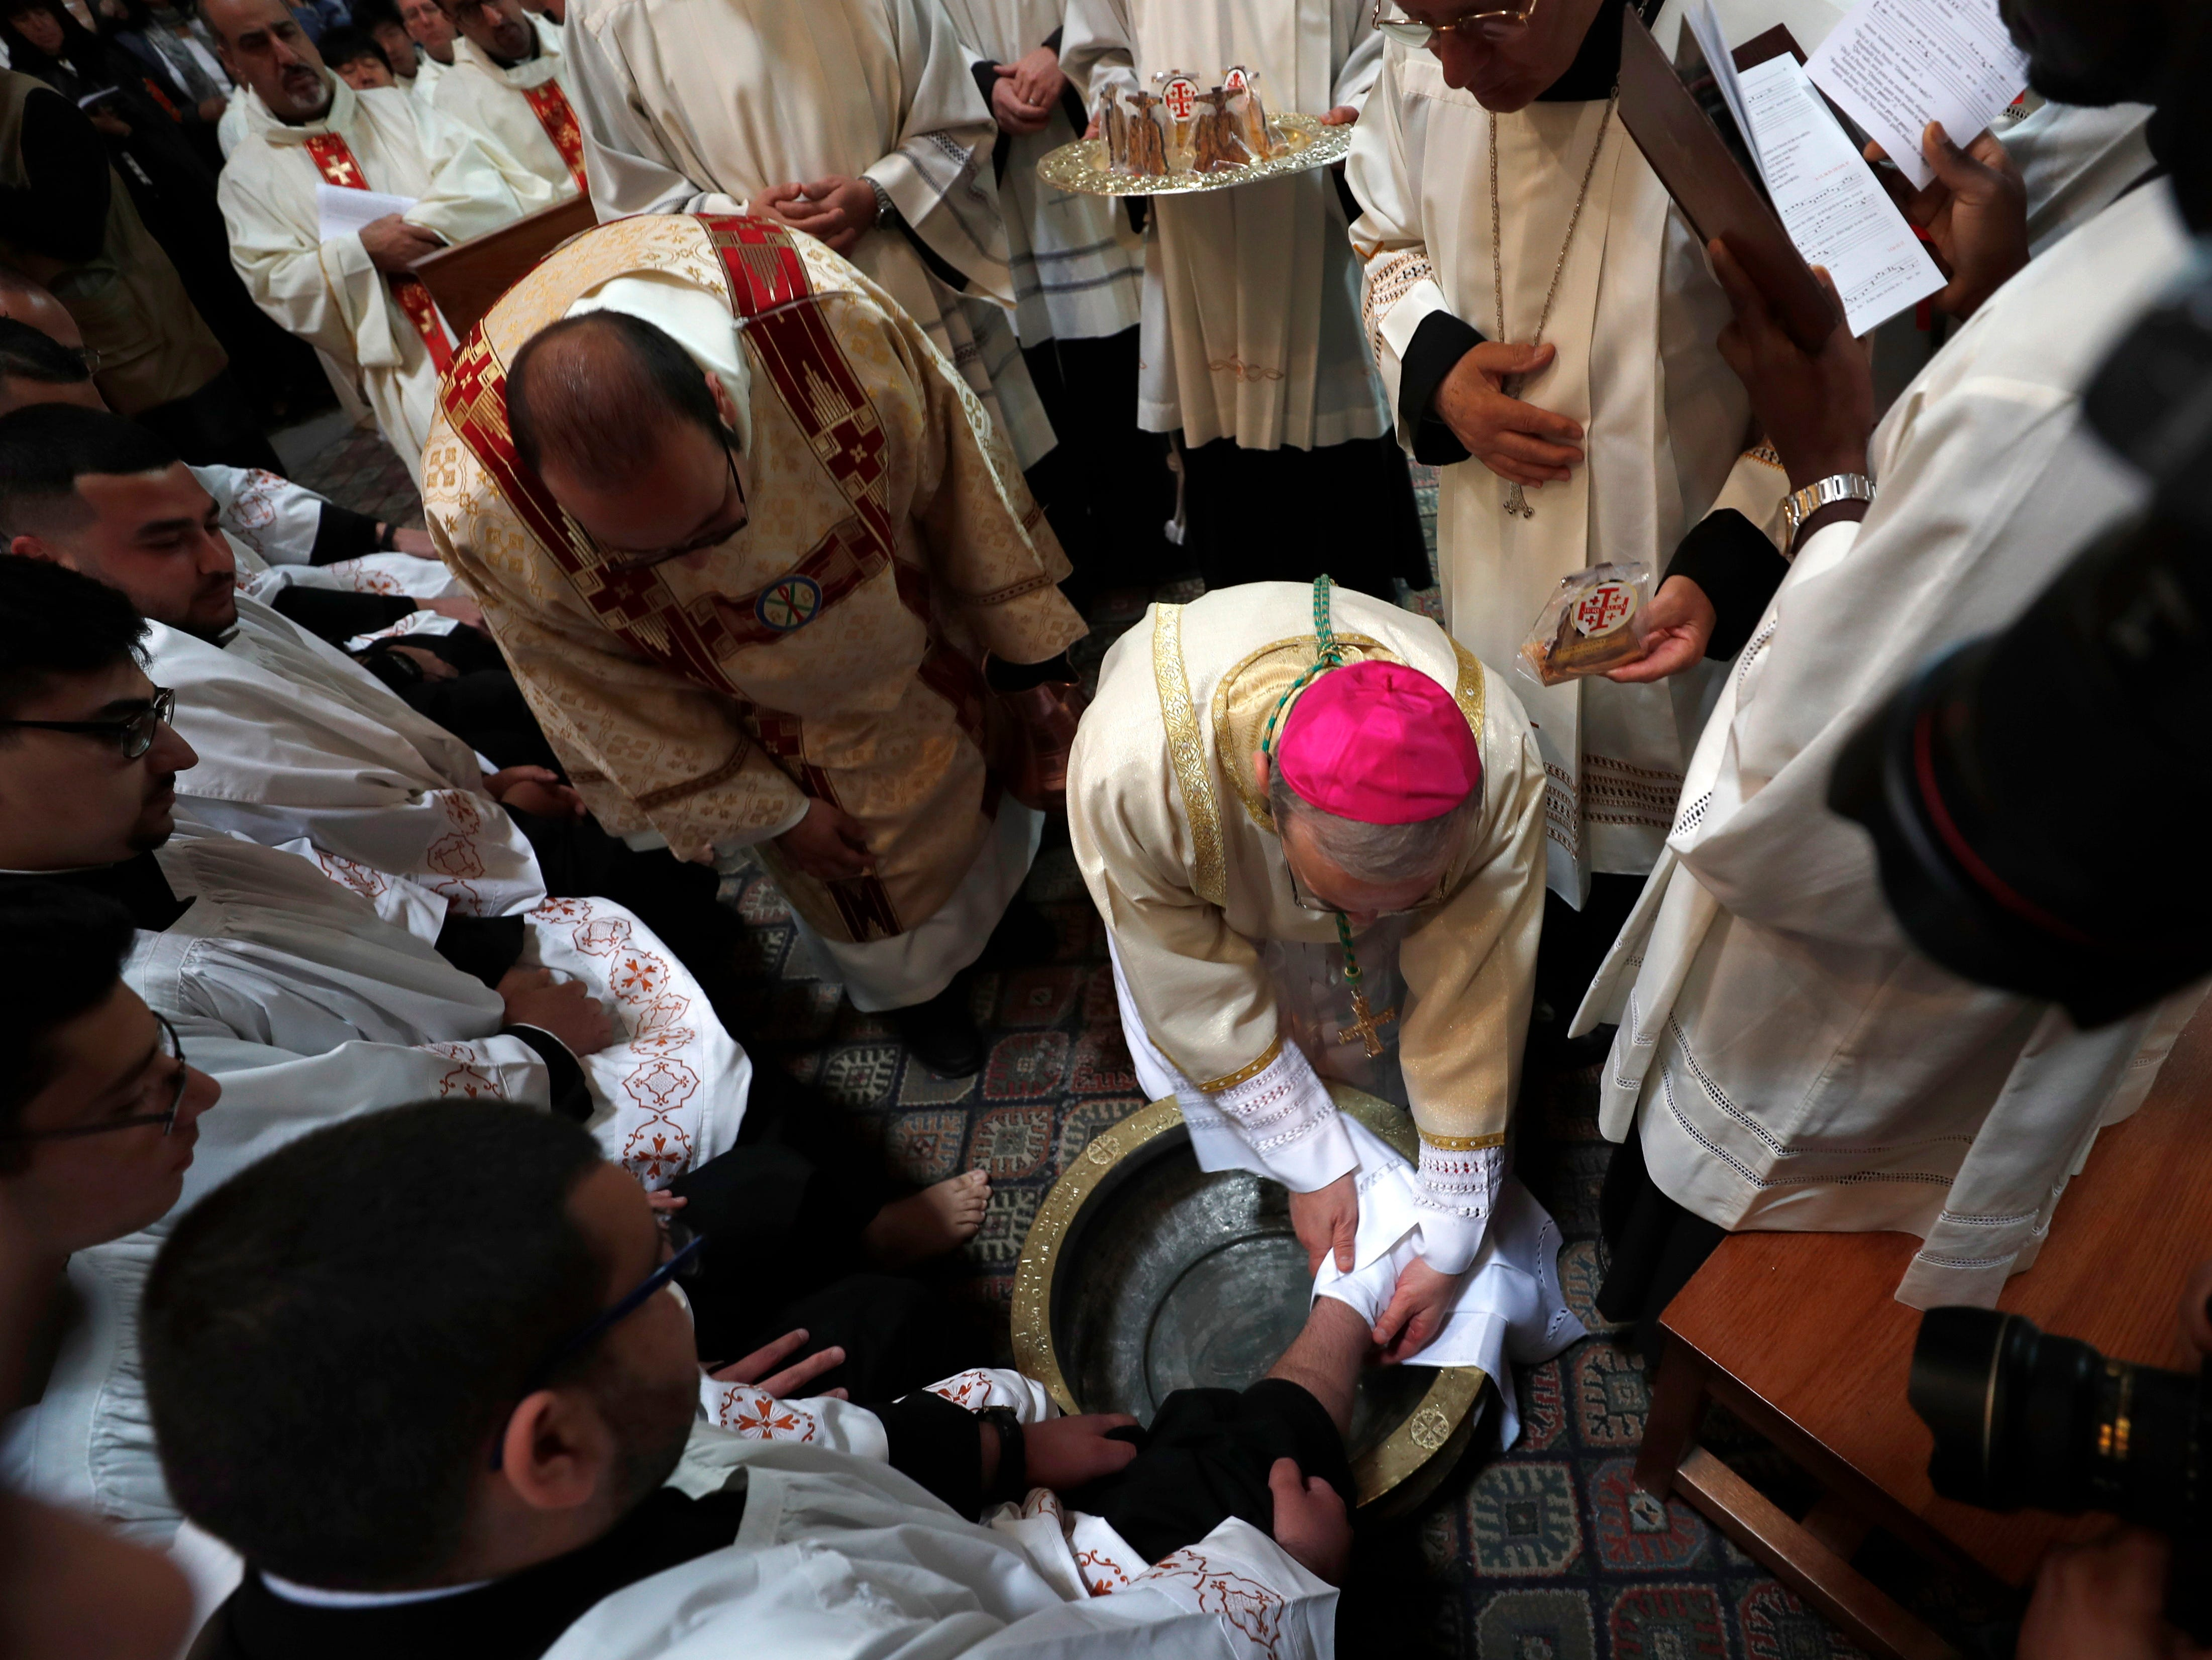 Pierbattista Pizzaballa, Latin Patriarchate of Jerusalem, washes a foot as he leads the procession of the holy Thursday, during the Catholic Washing of the Feet ceremony on Easter Holy Week, at the Church of the Holy Sepulcher in Jerusalem's old city on April 18, 2019.